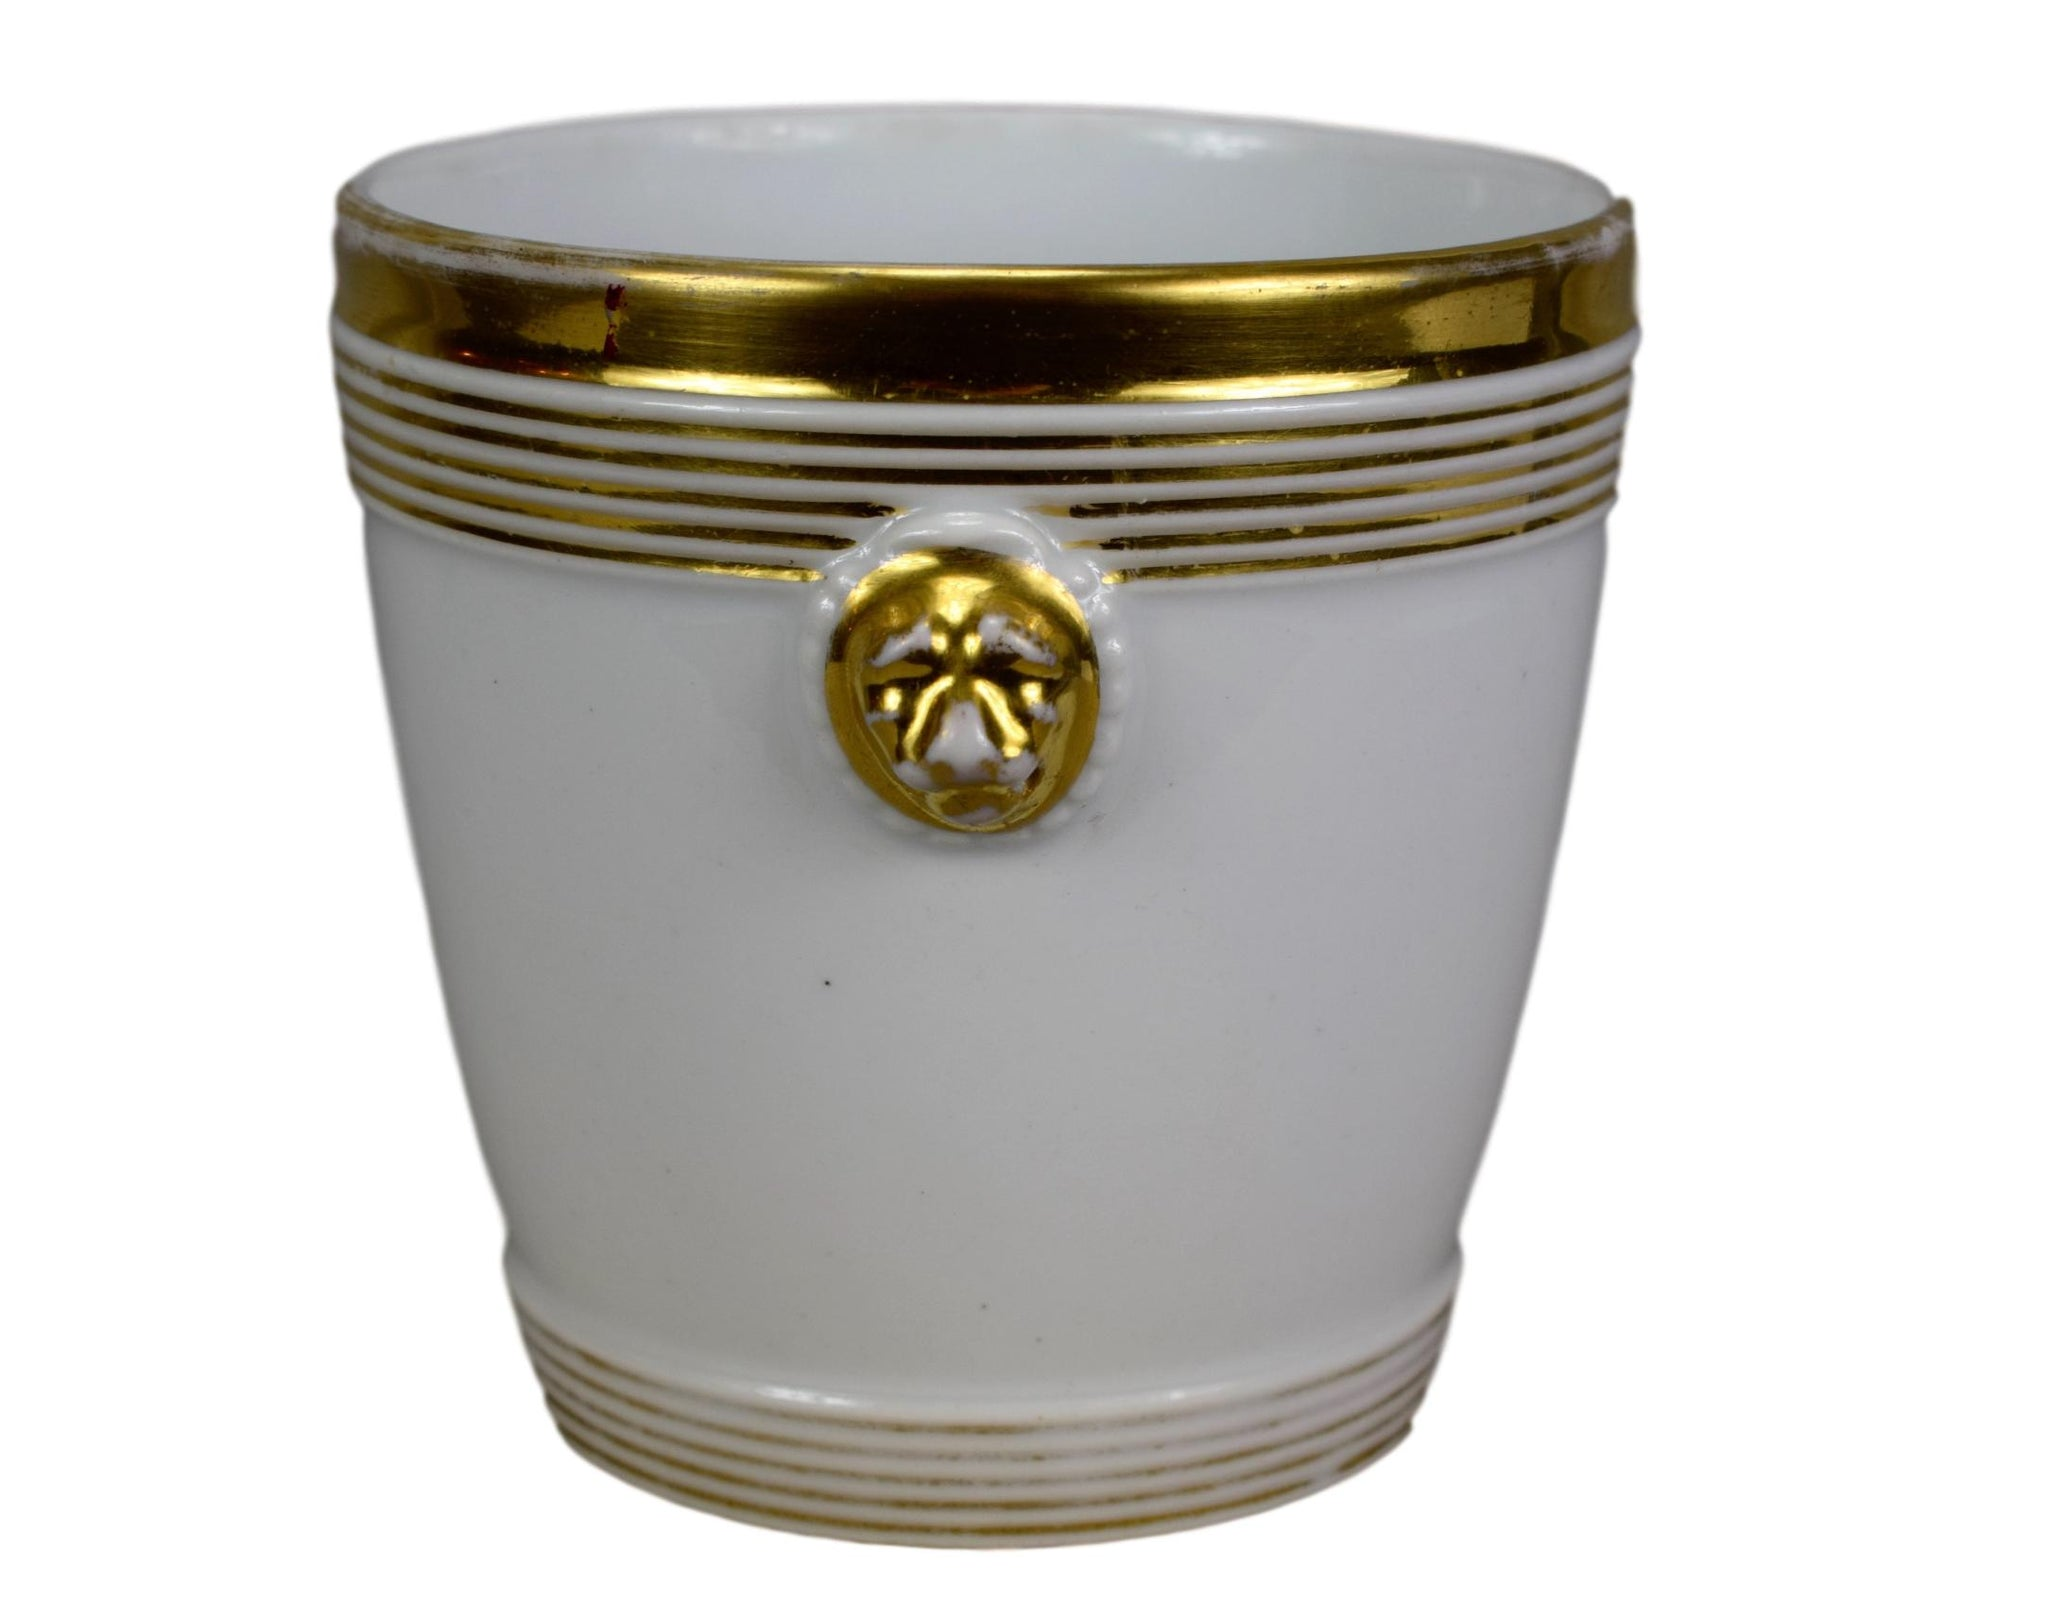 Paris Porcelain Cache Pot - Charmantiques